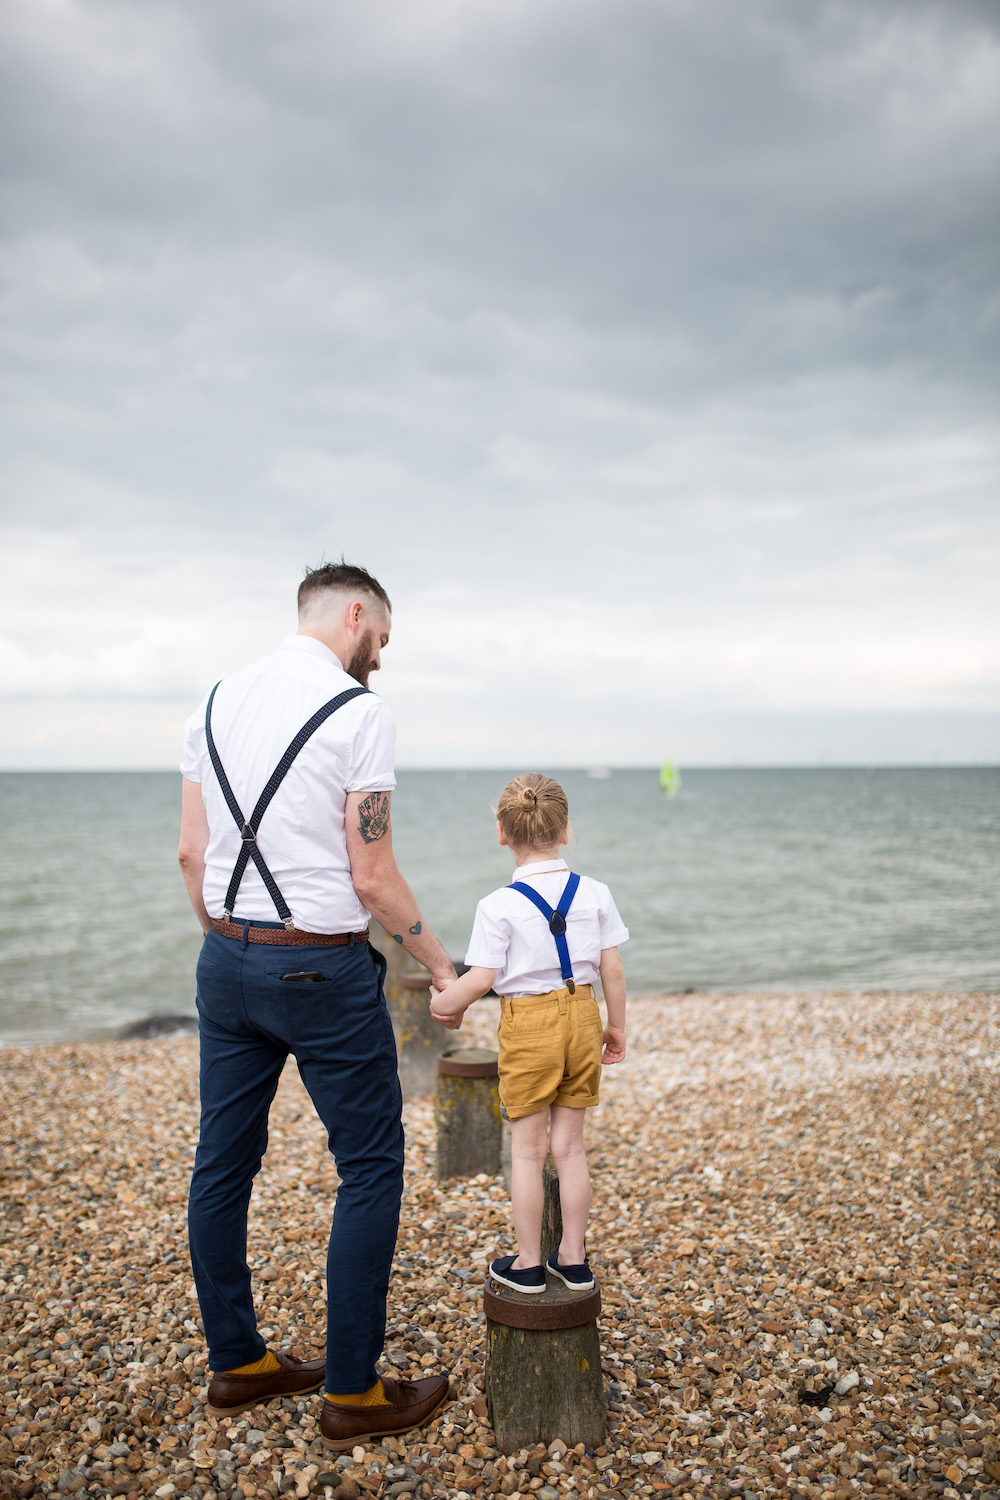 Alex + Wes, East Quay Venue, Whitstable, Kent Wedding - Florence Berry Photography-81